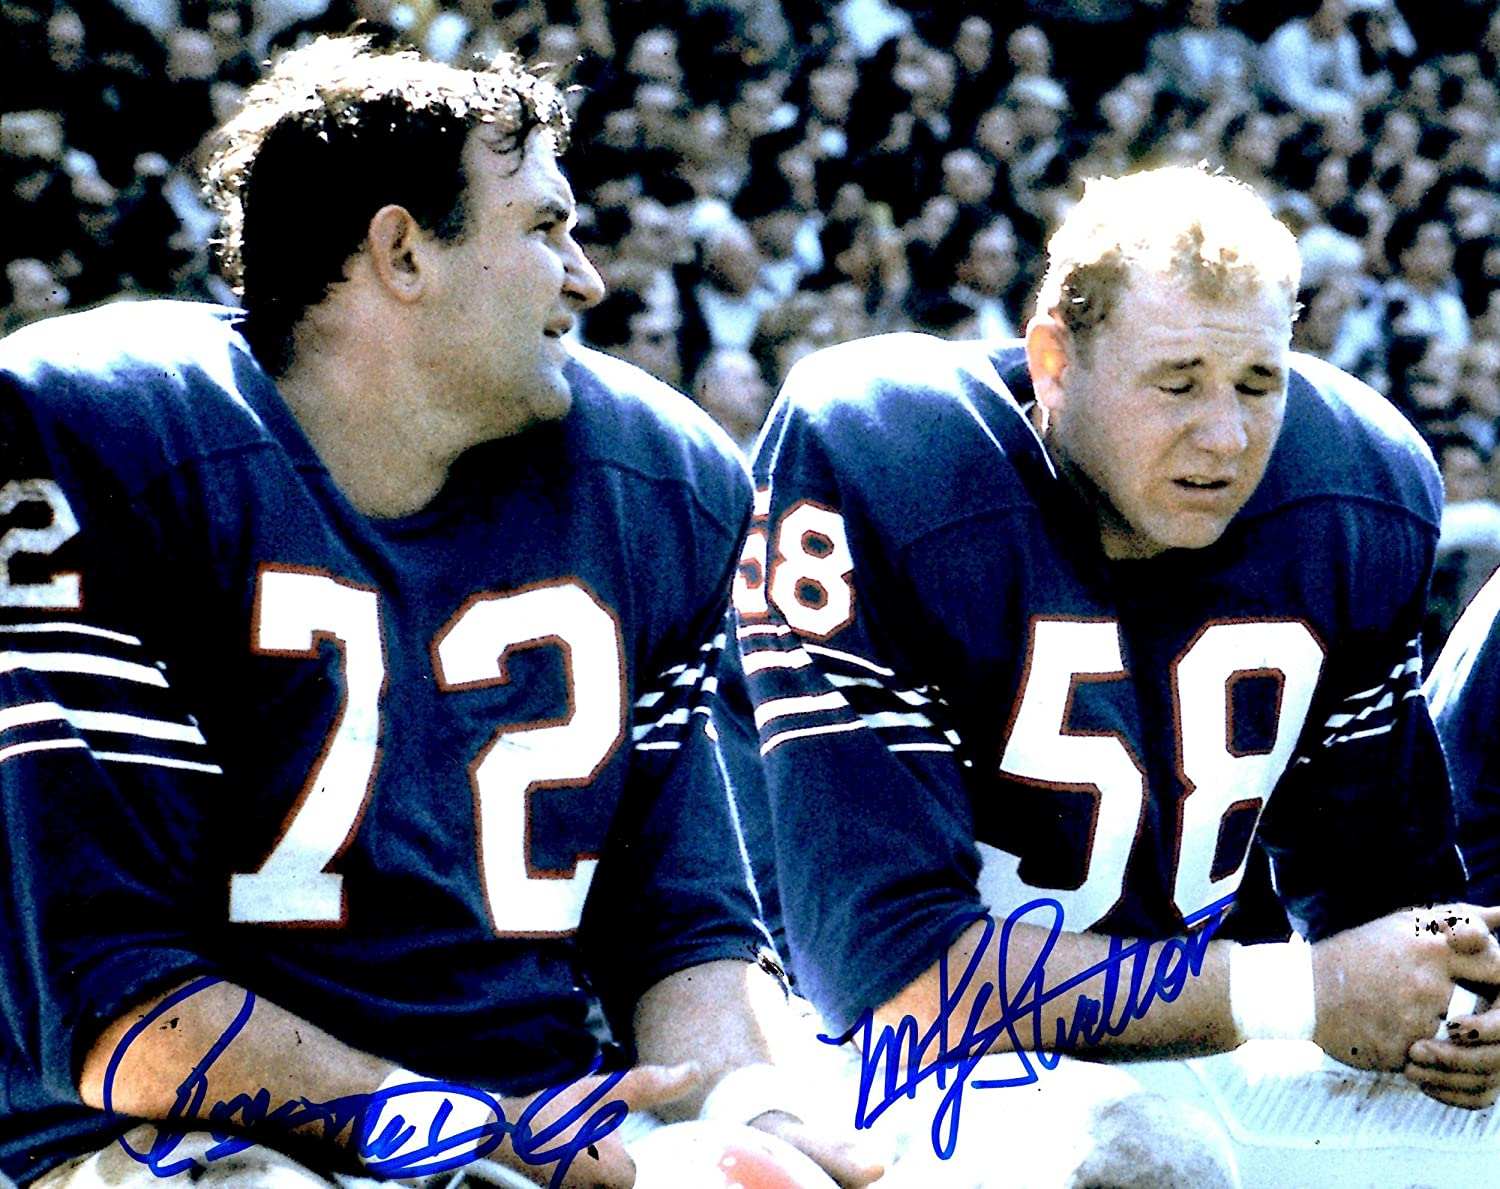 e454441b5c7 Autographed Ron MCDOLE & Mike Stratton 8X10 Buffalo Bills Photo - Autographed  NFL Photos: Amazon.ca: Sports & Outdoors